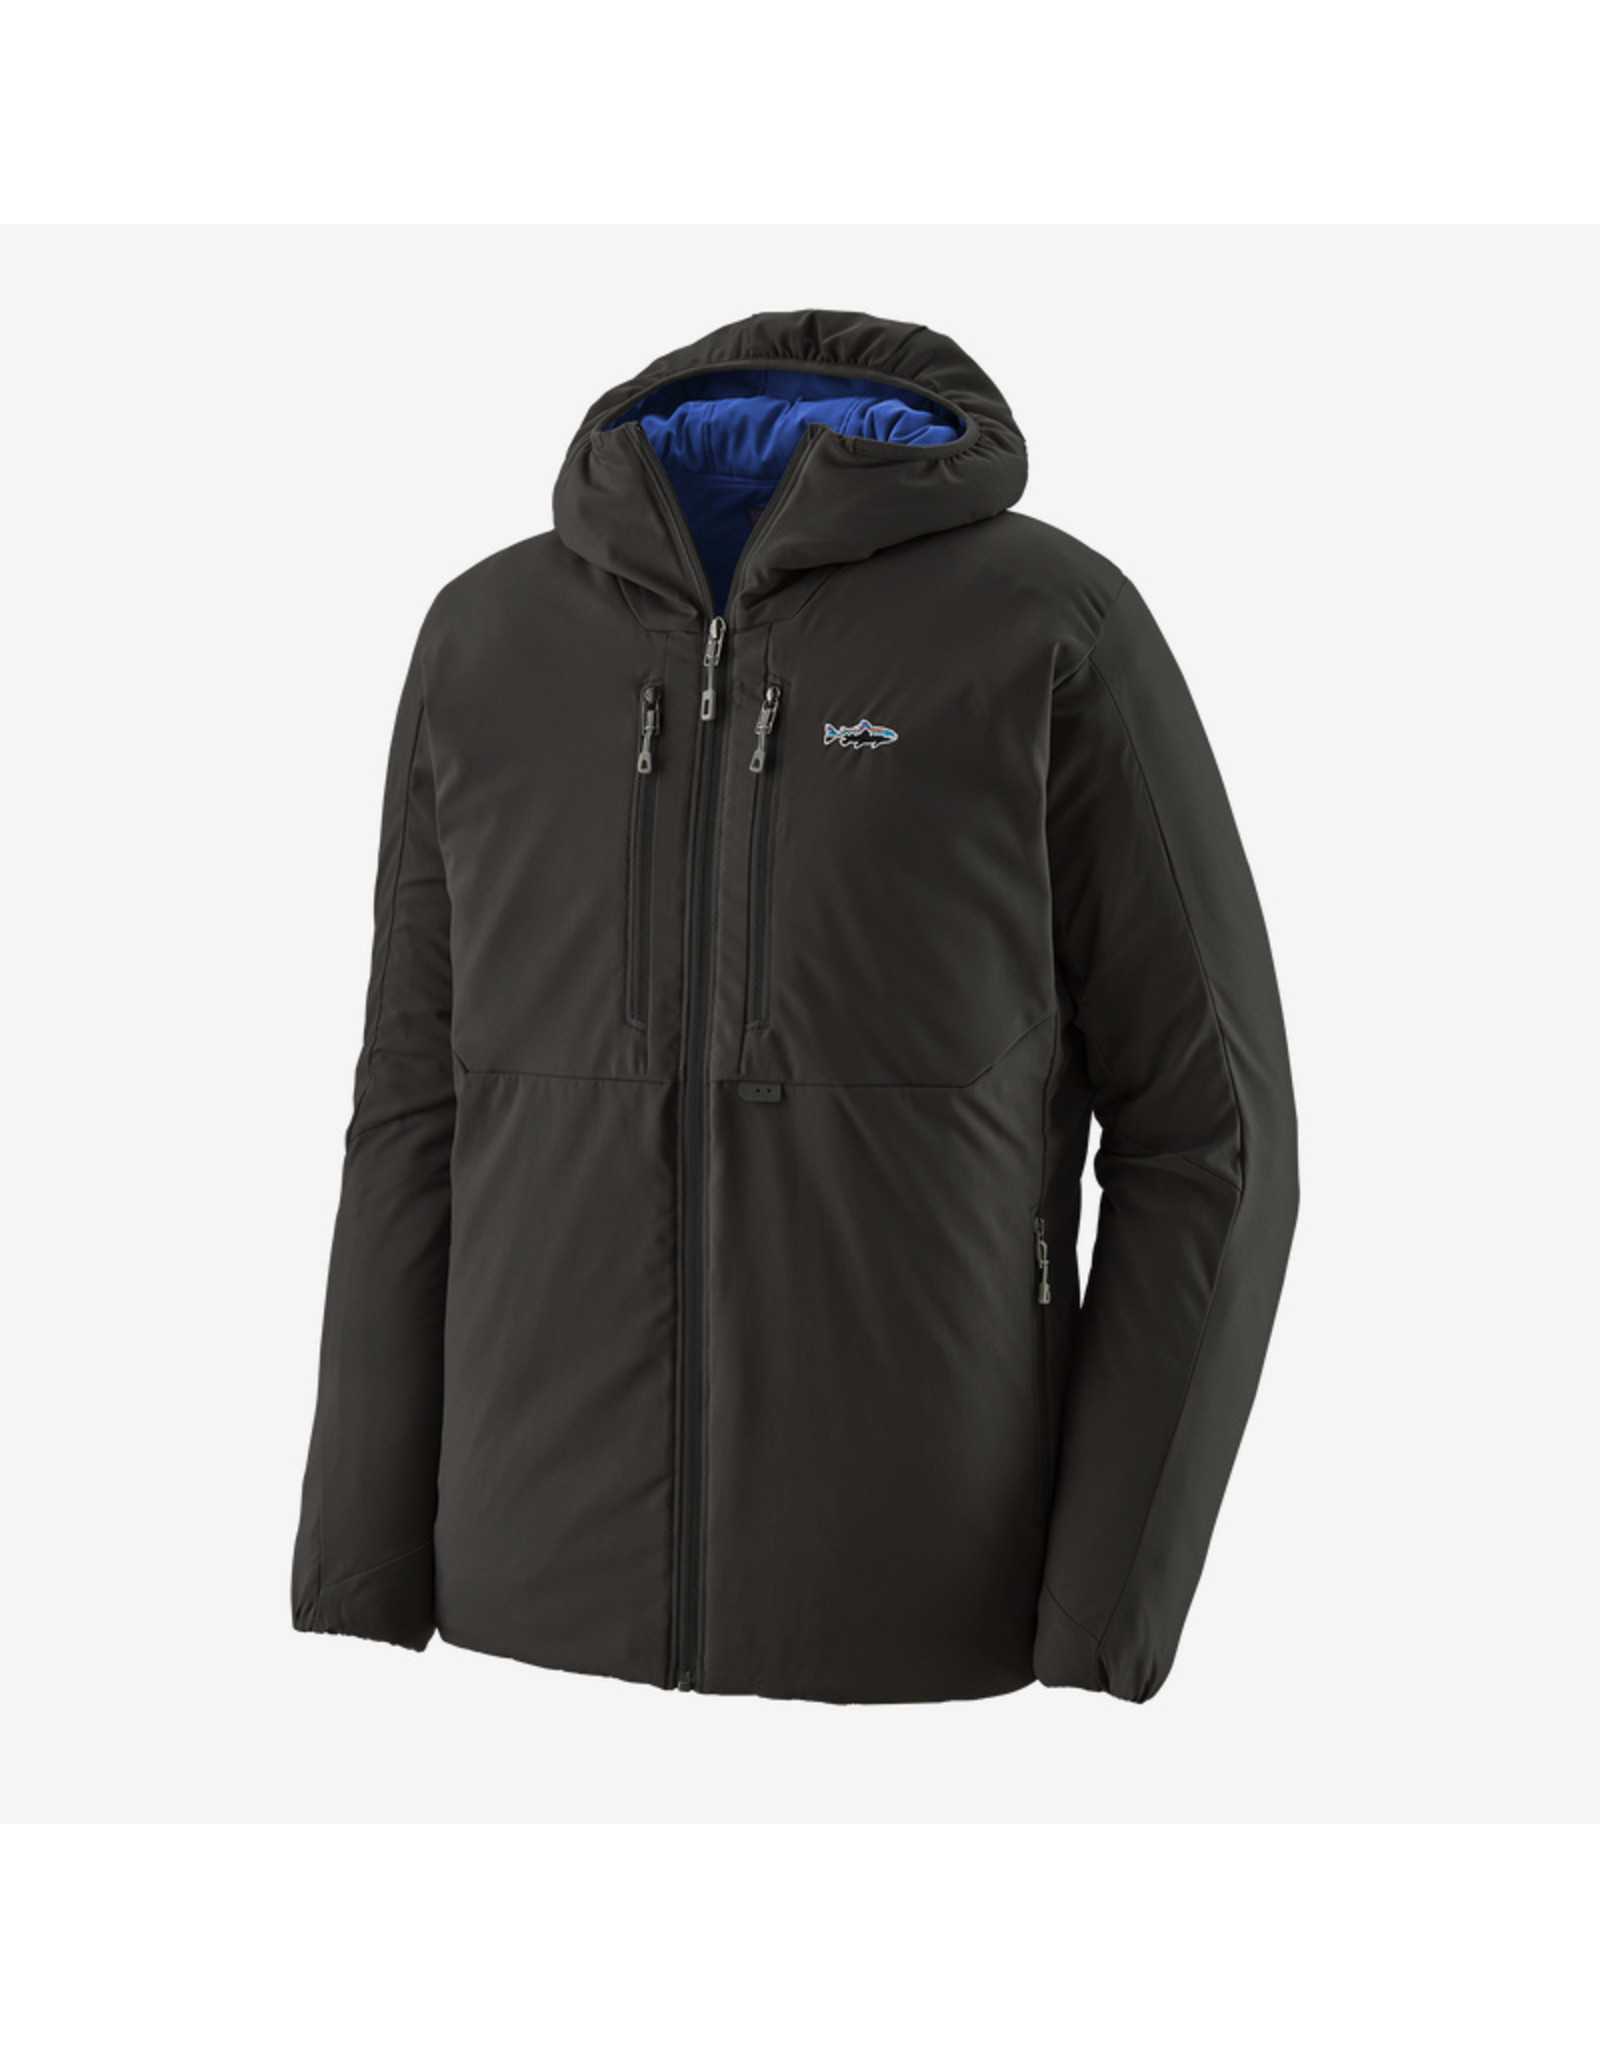 Patagonia Patagonia - Men's Tough Puff Hoody